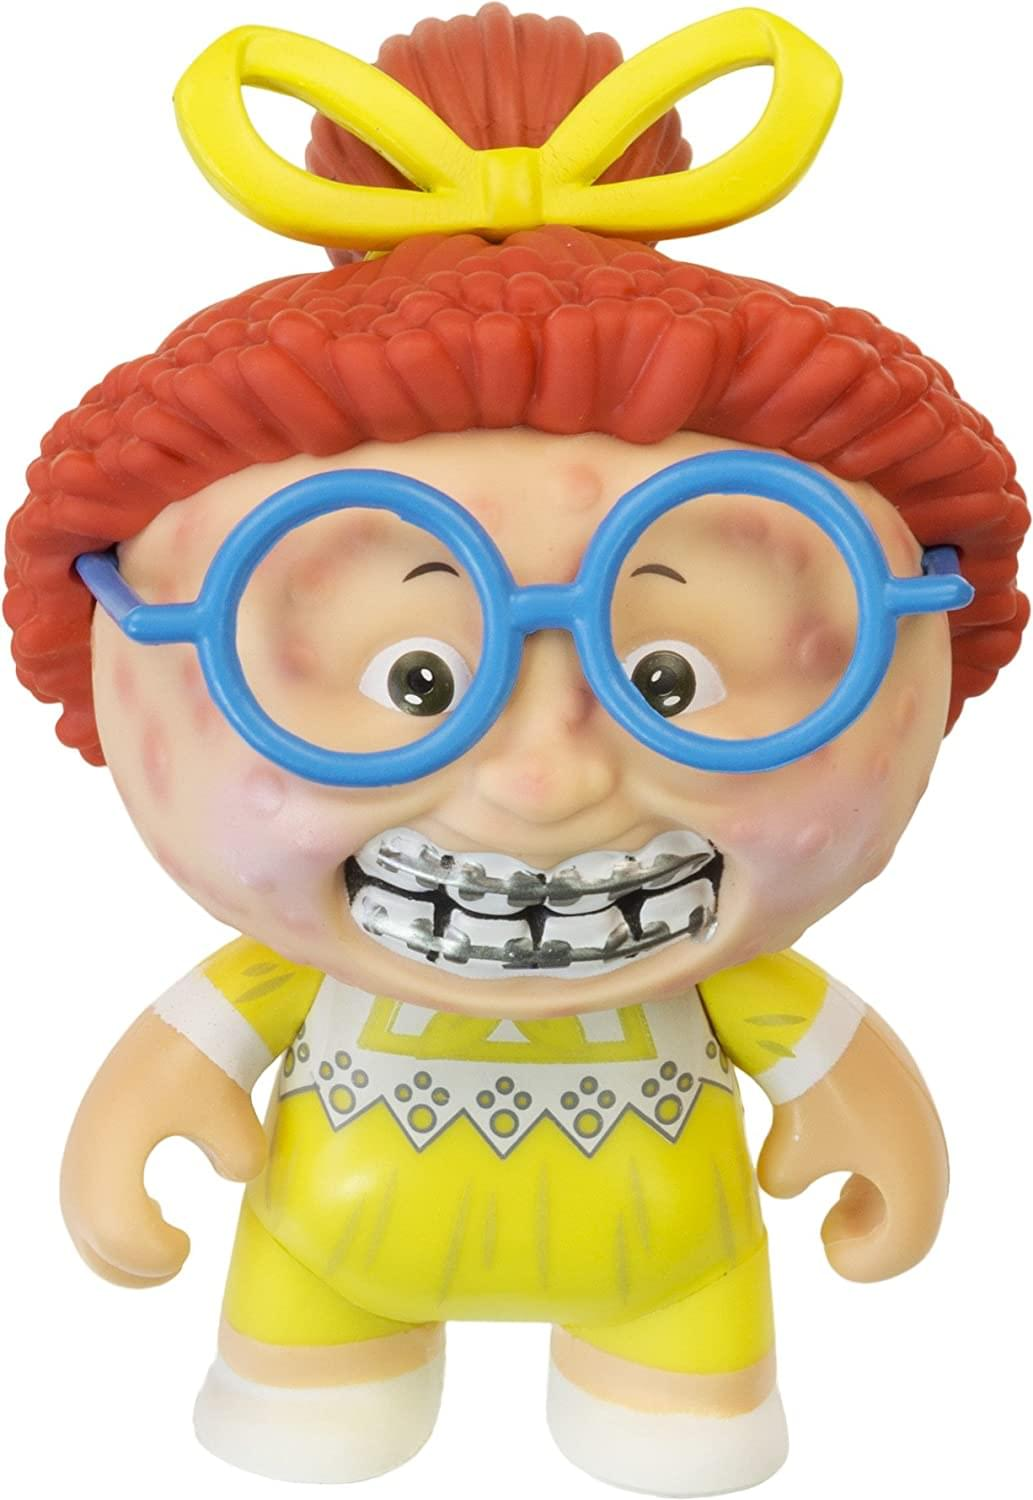 Garbage Pail Kids Funko 2.5-Inch Vinyl Mini-Figure | Ghastly Ashley